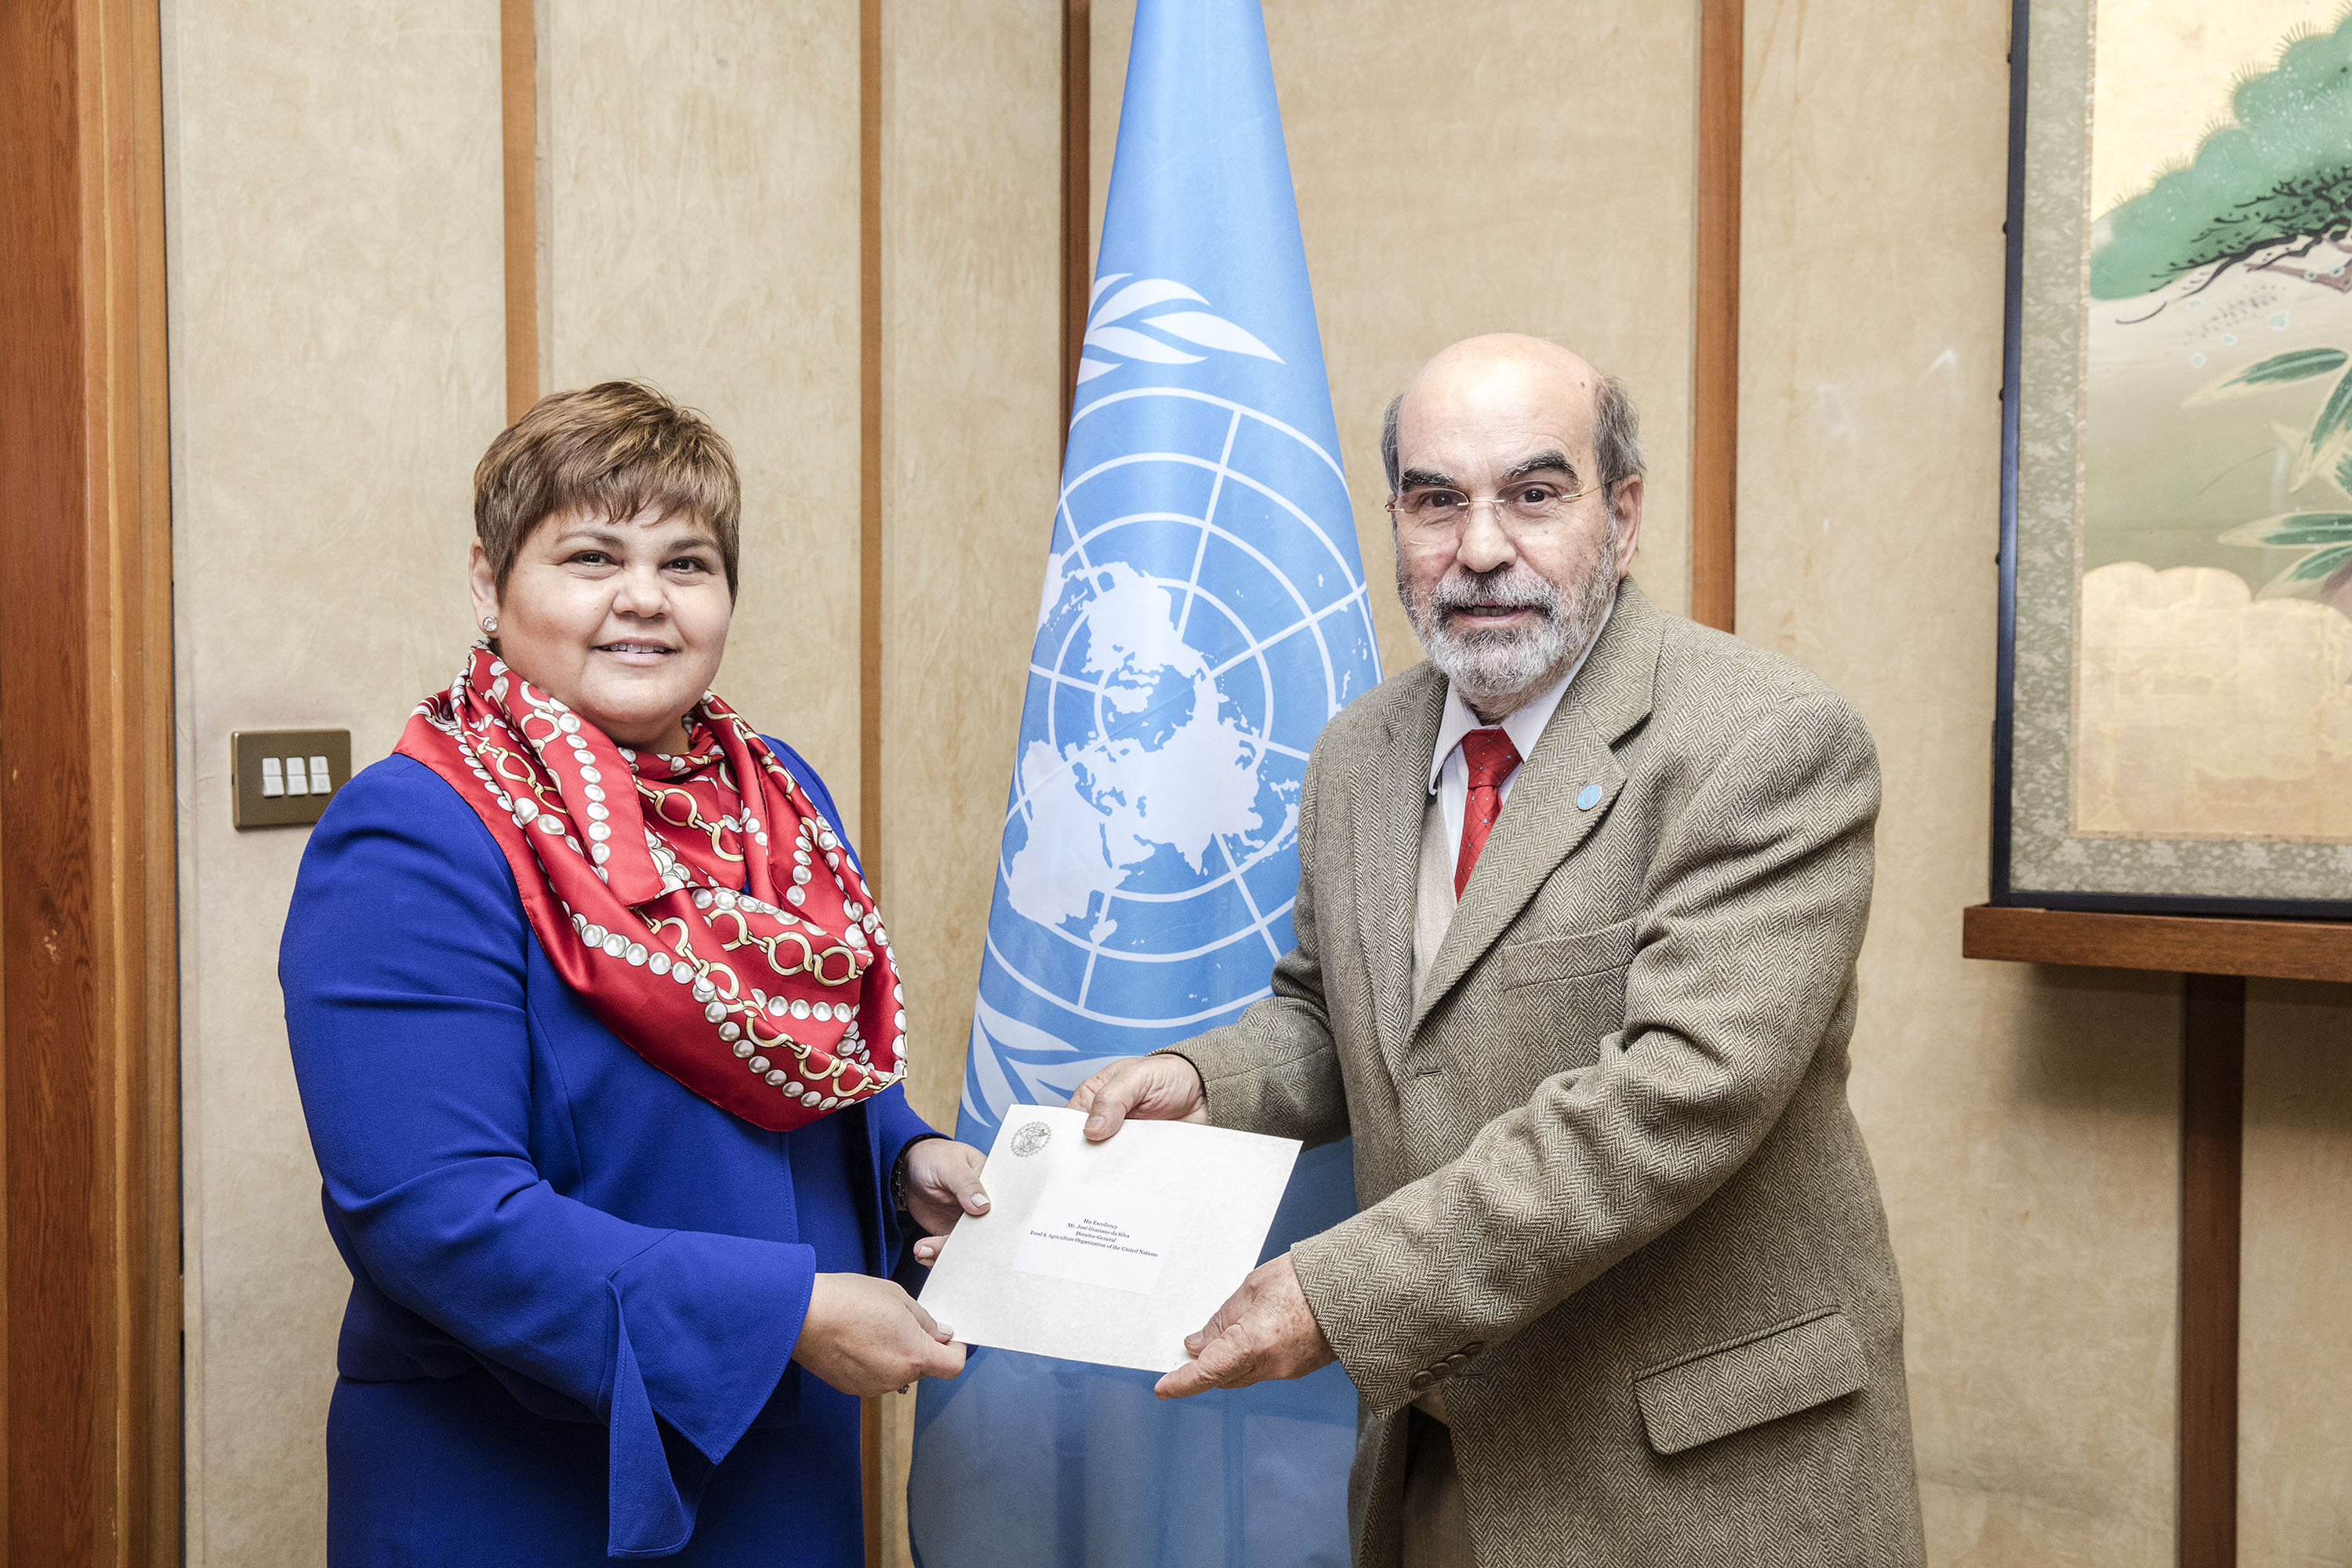 12 February 2018, Rome Italy - Perla Perdomo, Ambassador and Permanent Representative of Belize presenting his Credentials to FAO Director-General Jose' Graziano da Silva. FAO Headquarters. Photo credit must be given: ©FAO/Giulio Napolitano. Editorial use only. Copyright ©FAO